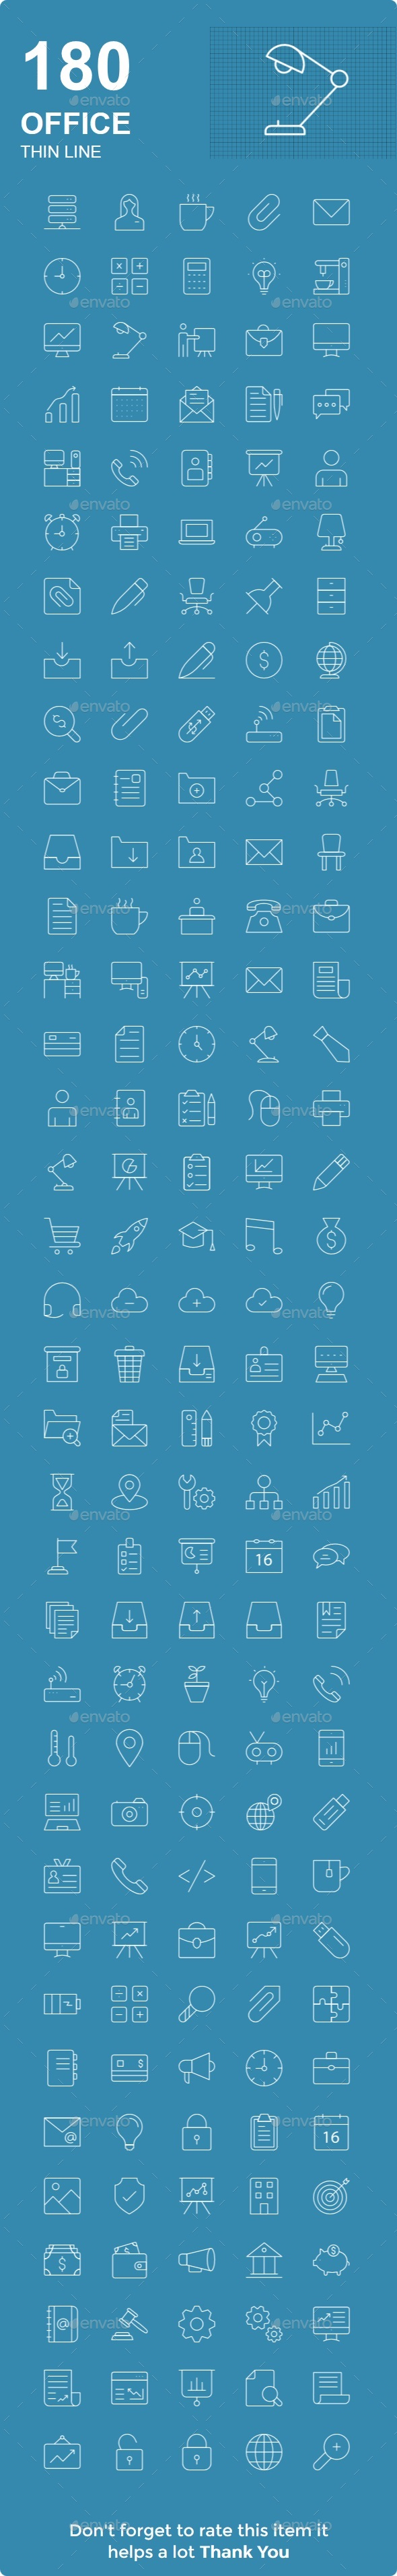 Office Thin Line - Web Icons